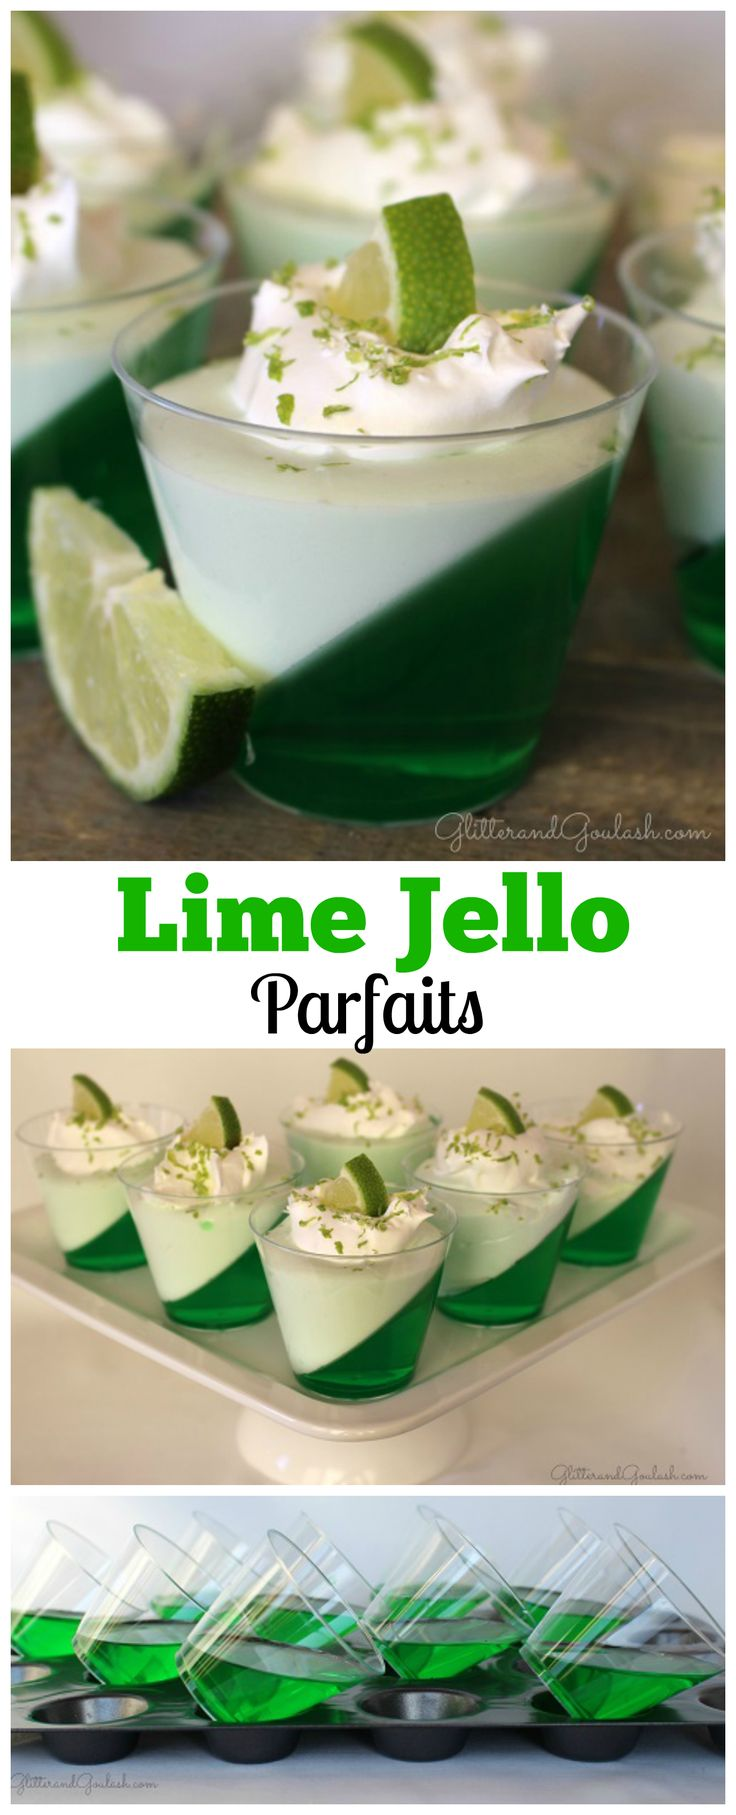 These Lime Jello Parfaits are deliciously light and refreshing. They can be served as a dessert or a side dish to any meal. Delicious and colorful! http://glitterandgoulash.com/lime-jello-parfaits/